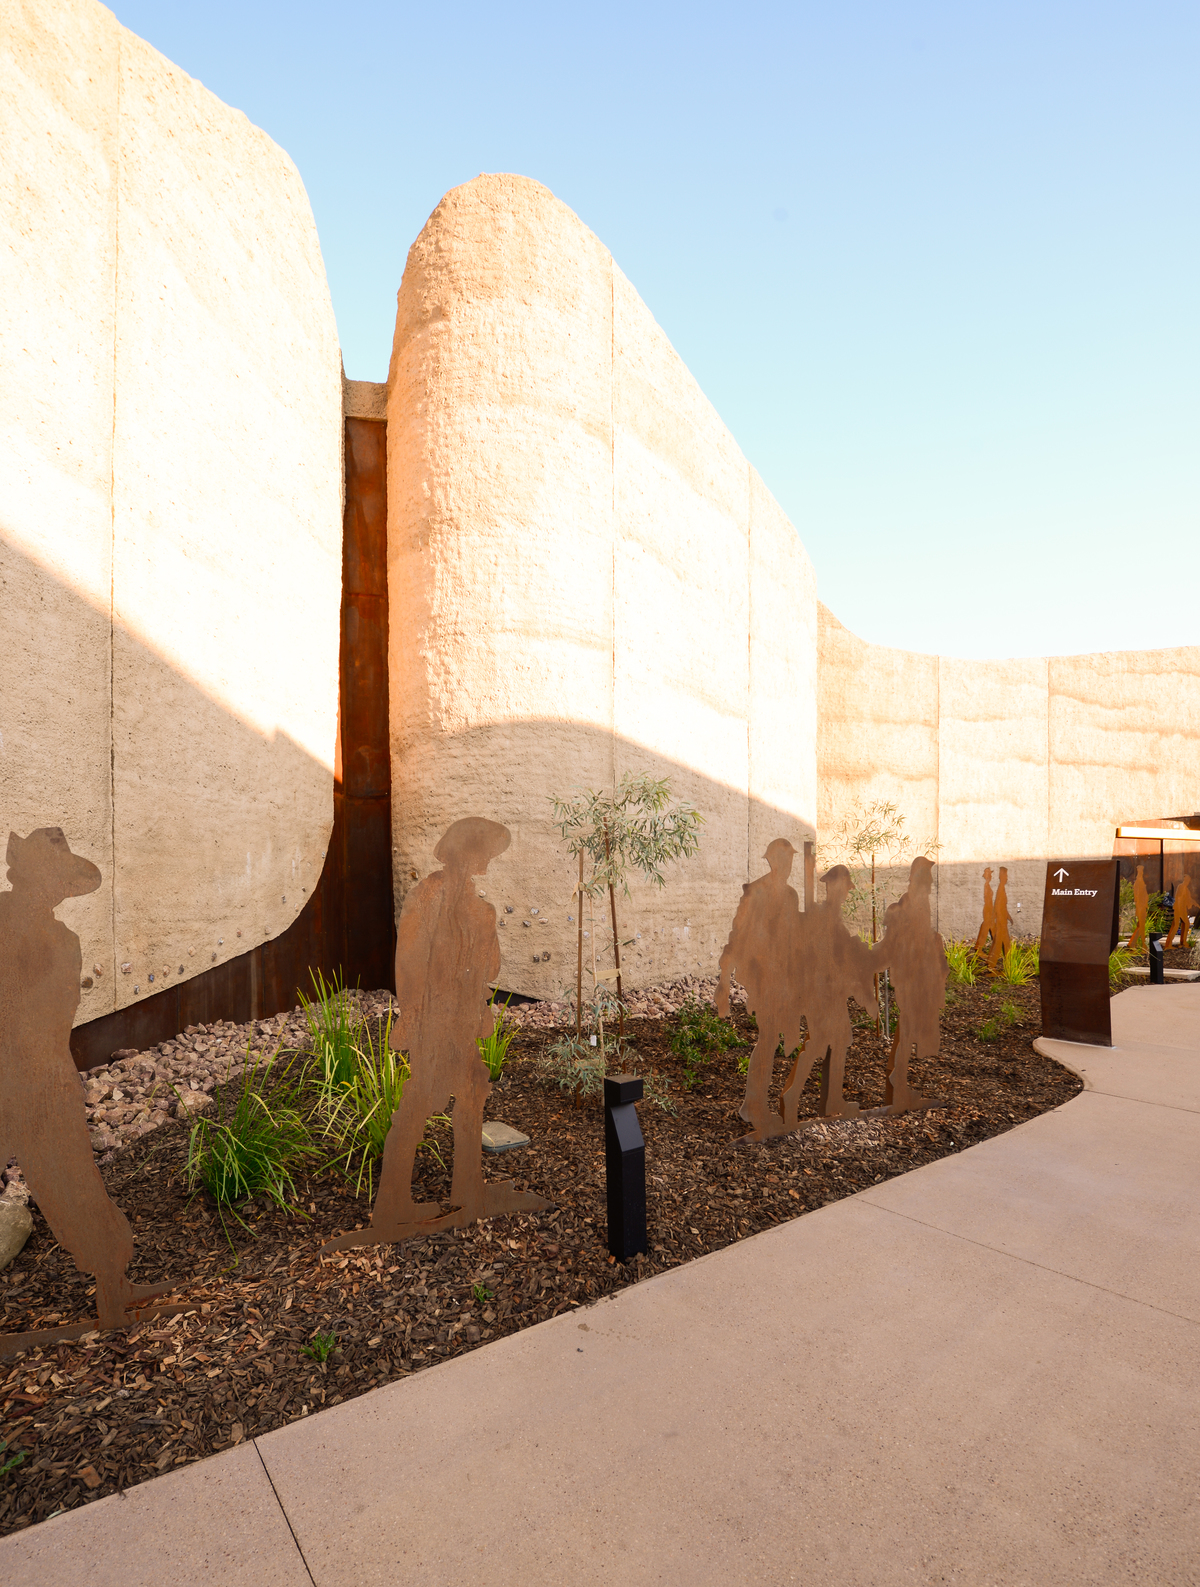 The Waltzing Matilda Centre